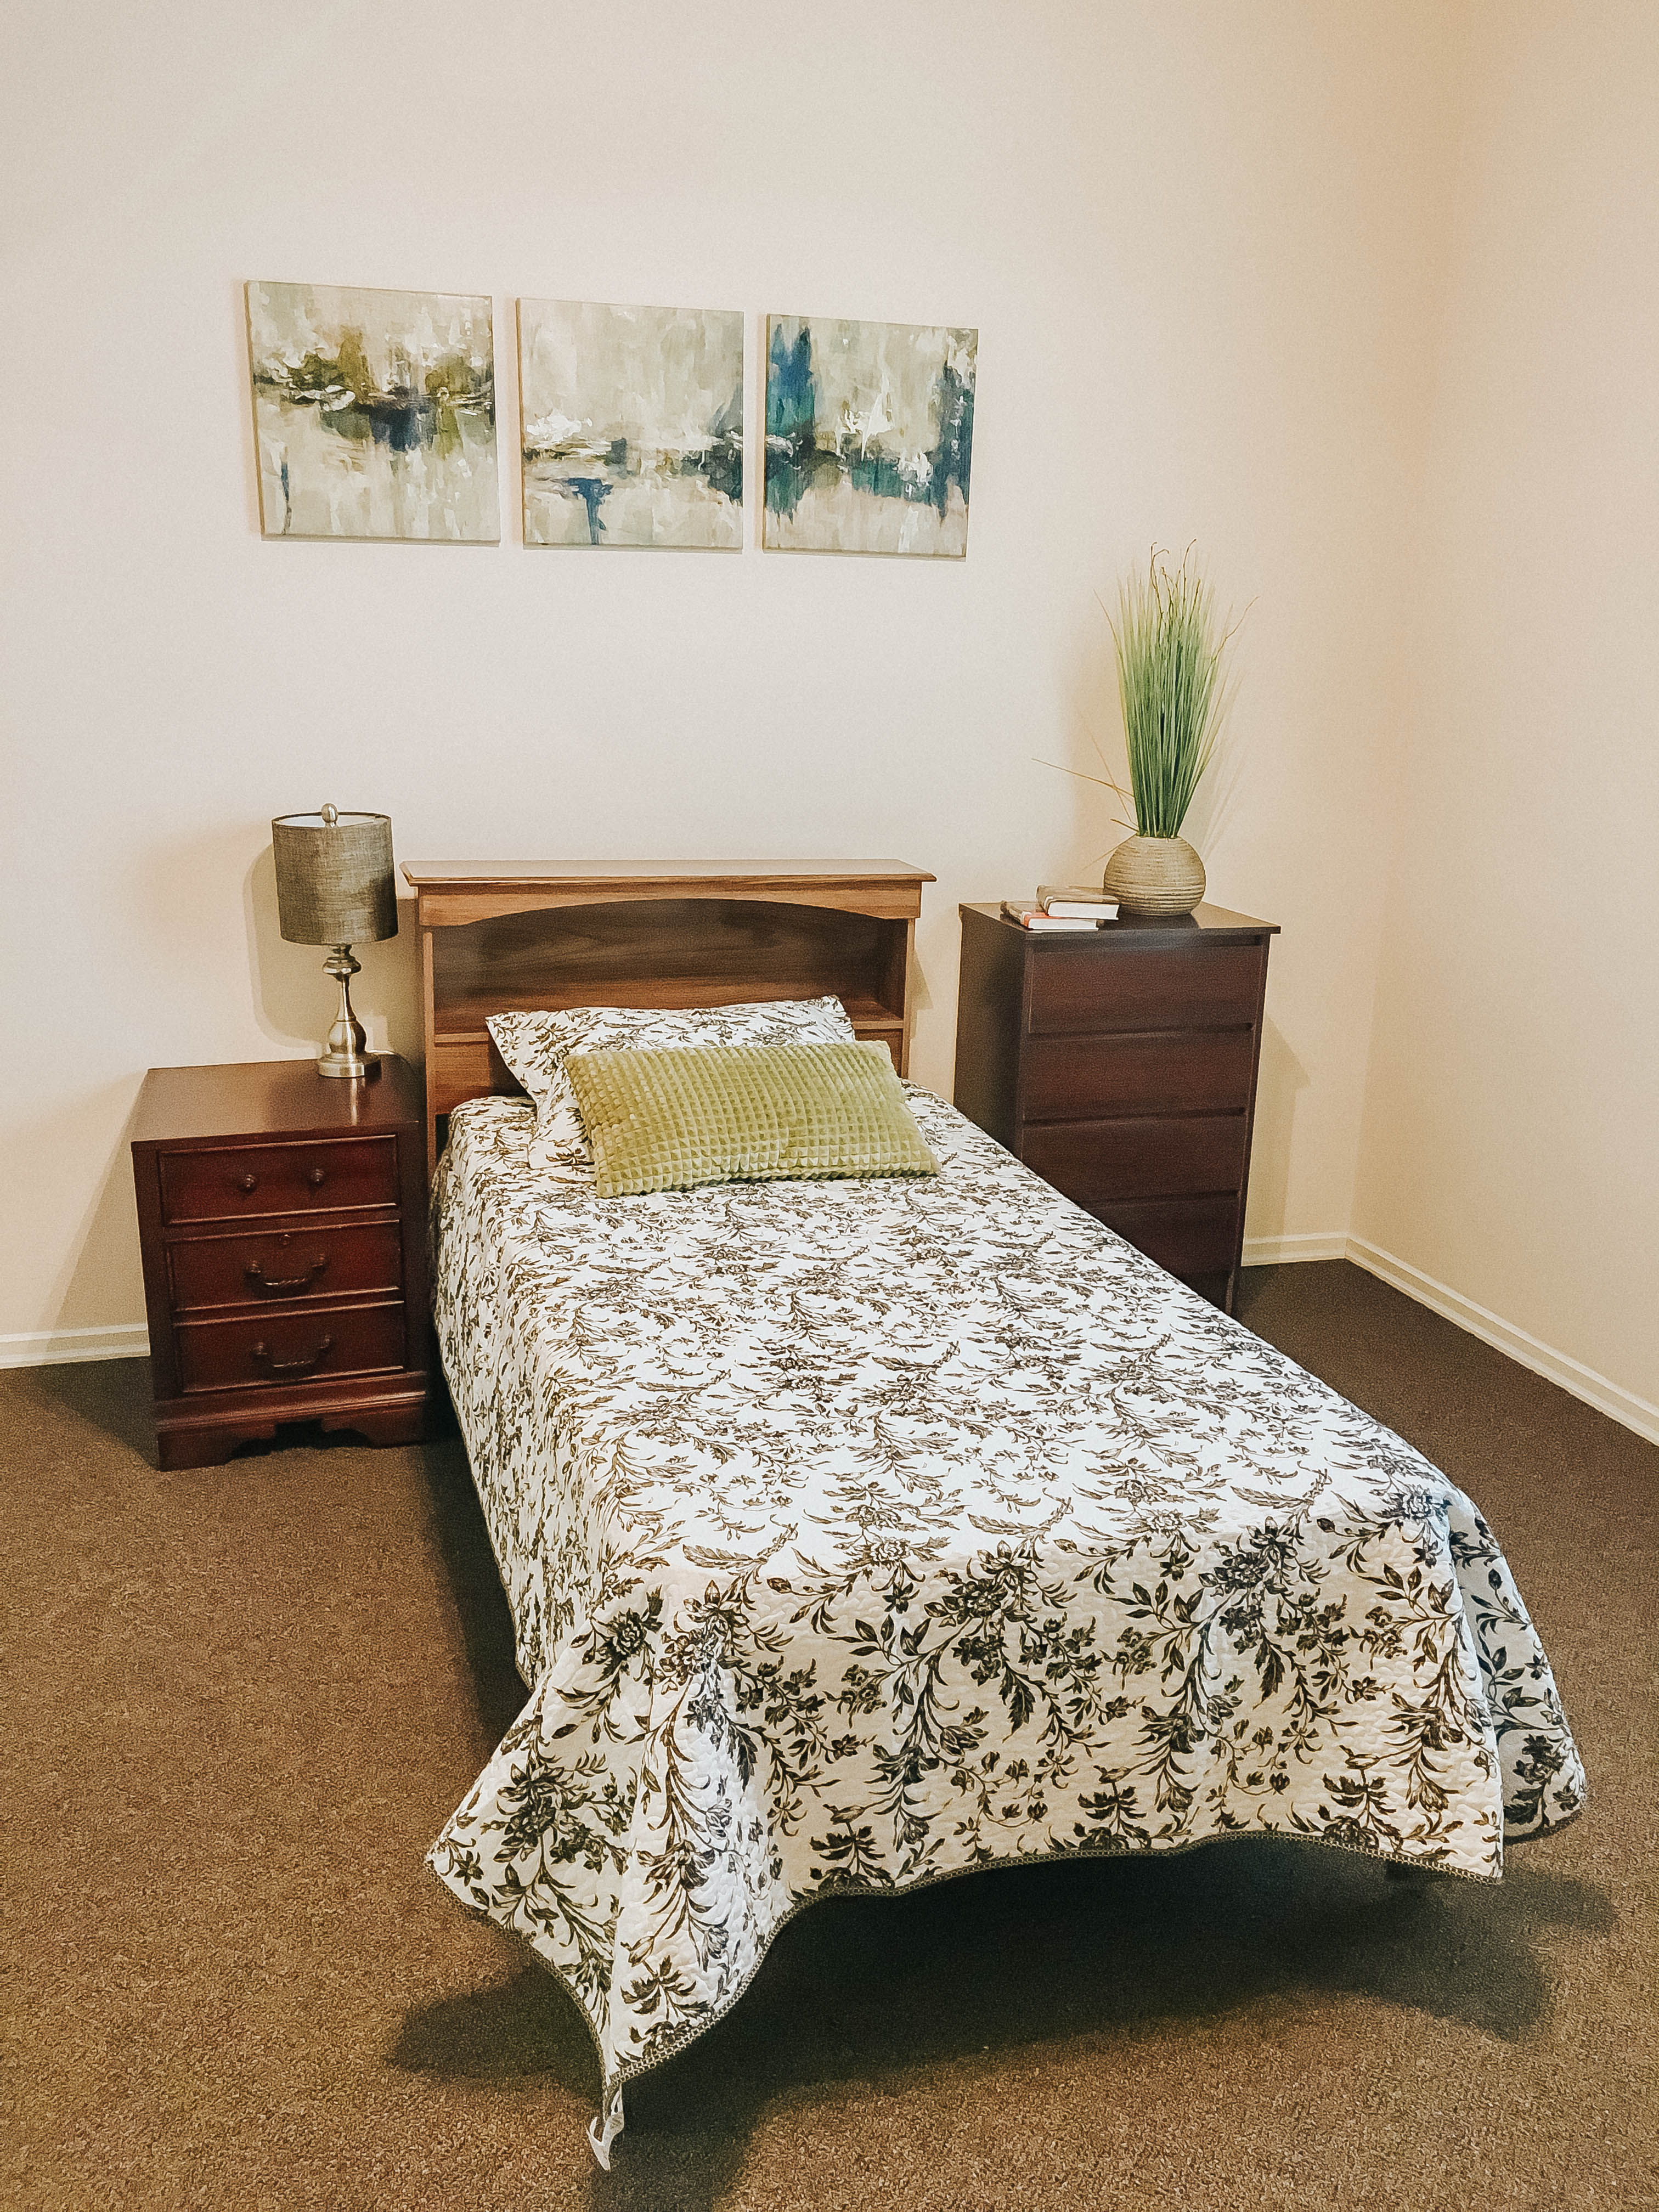 Tambree Meadows Assisted Living and Memory Care Bedroom 2